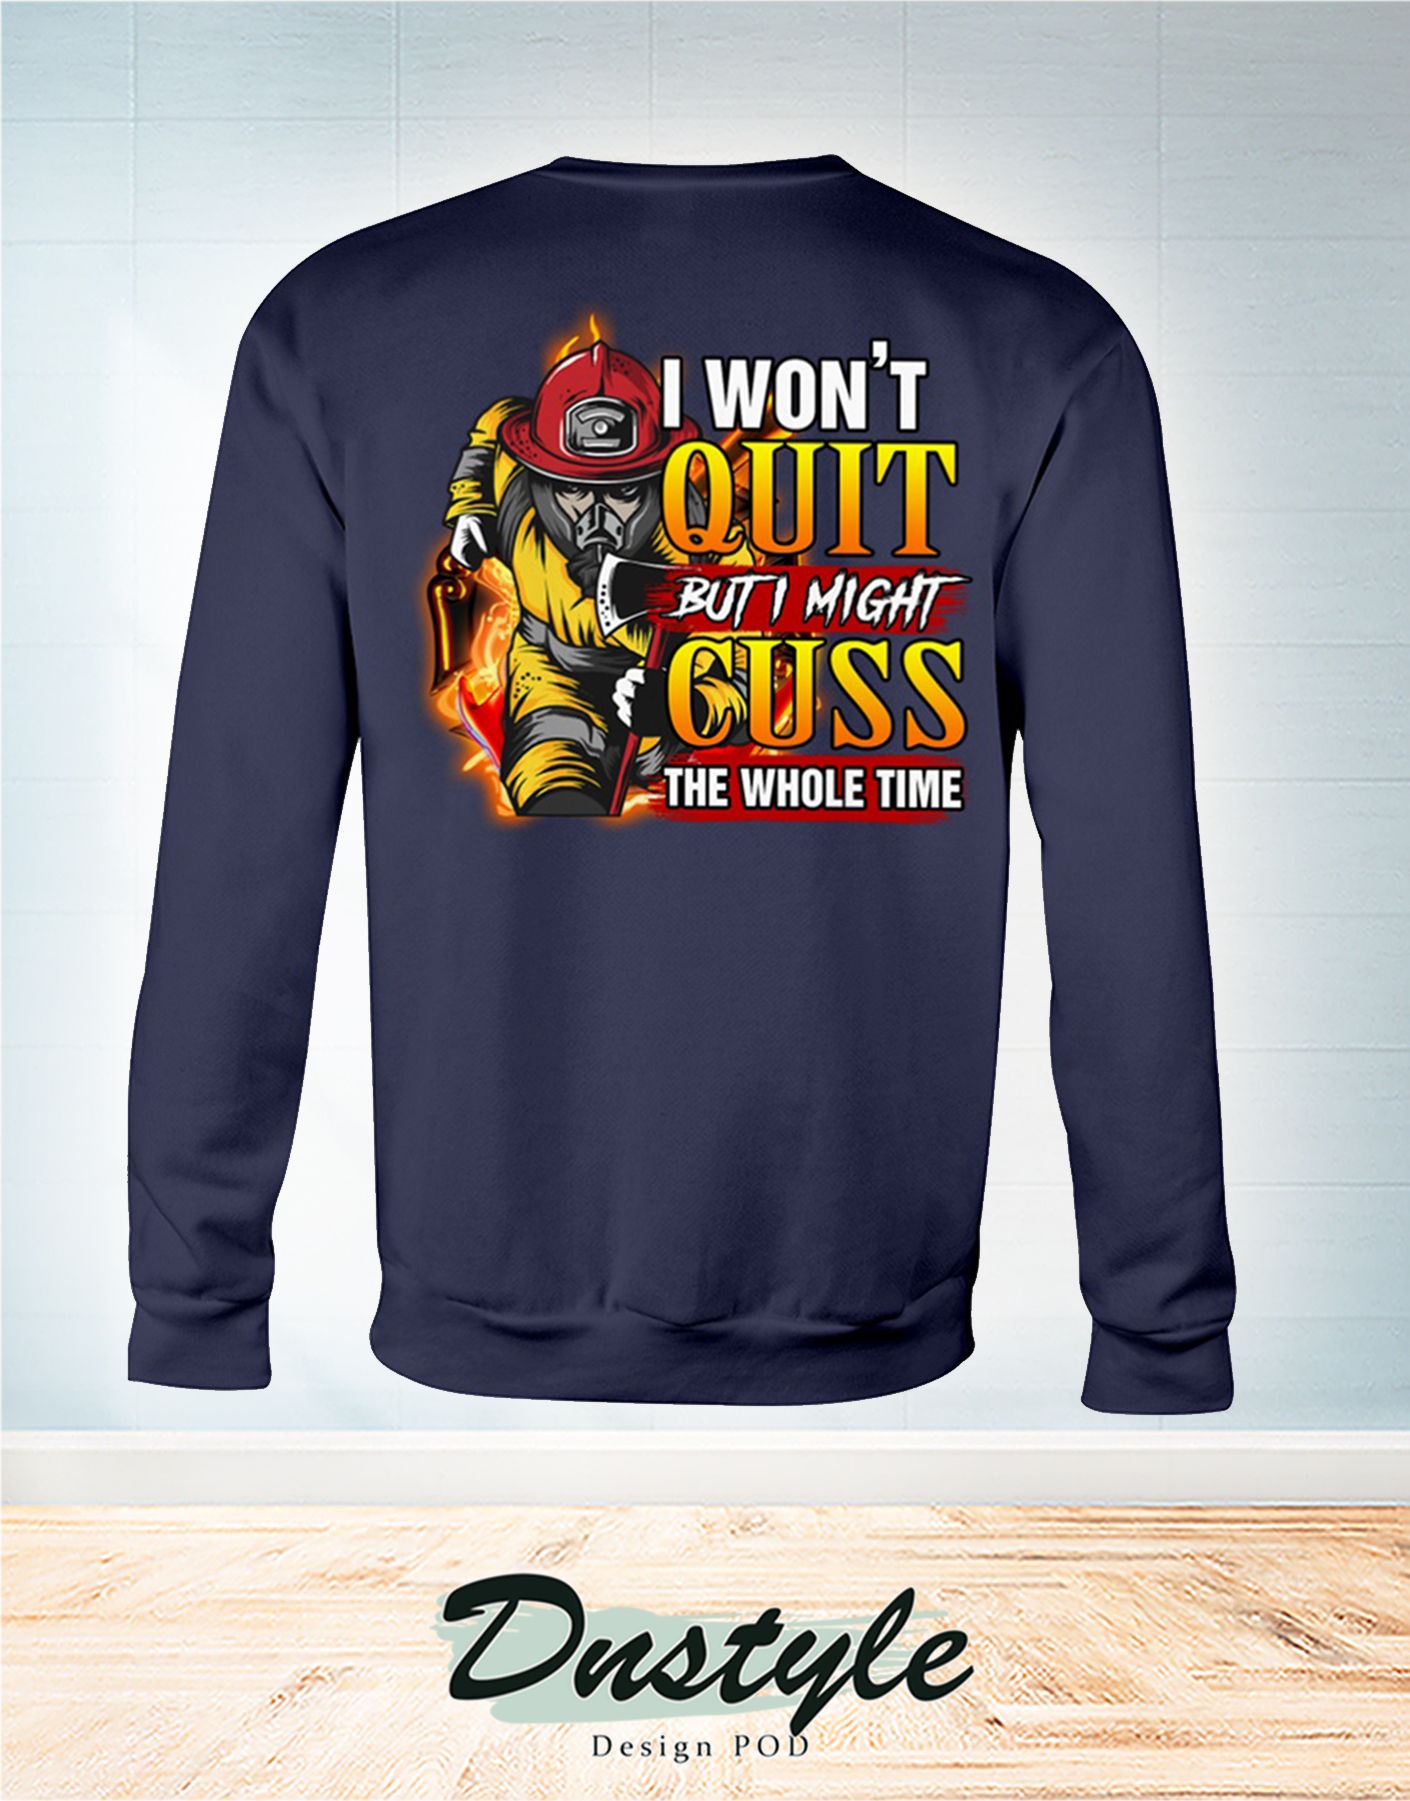 Firefighter I won't quit but I might cuss the whole time long sleeve